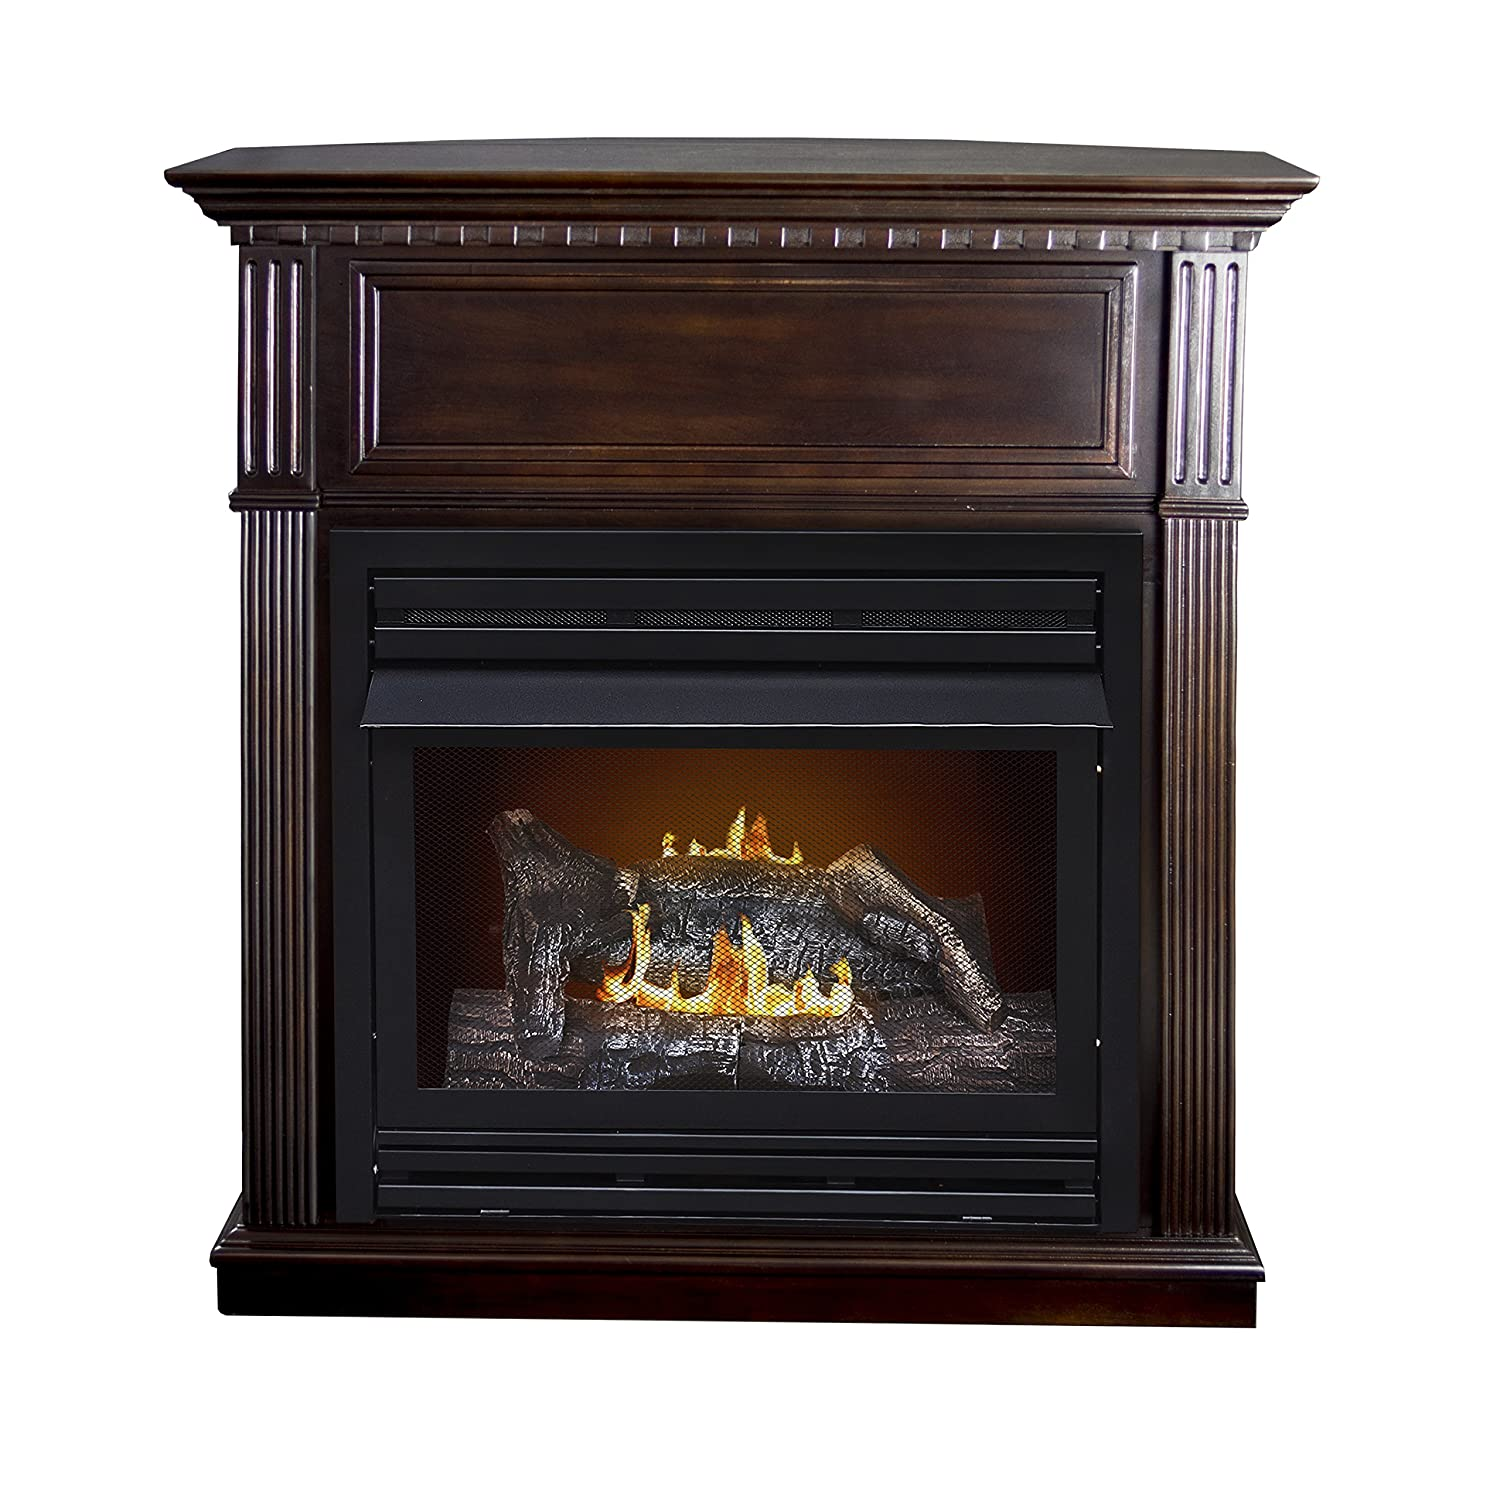 fireplaces vantage vent in com corner aaronfineart ventless hottubfireplace gas non free vented fireplace modern